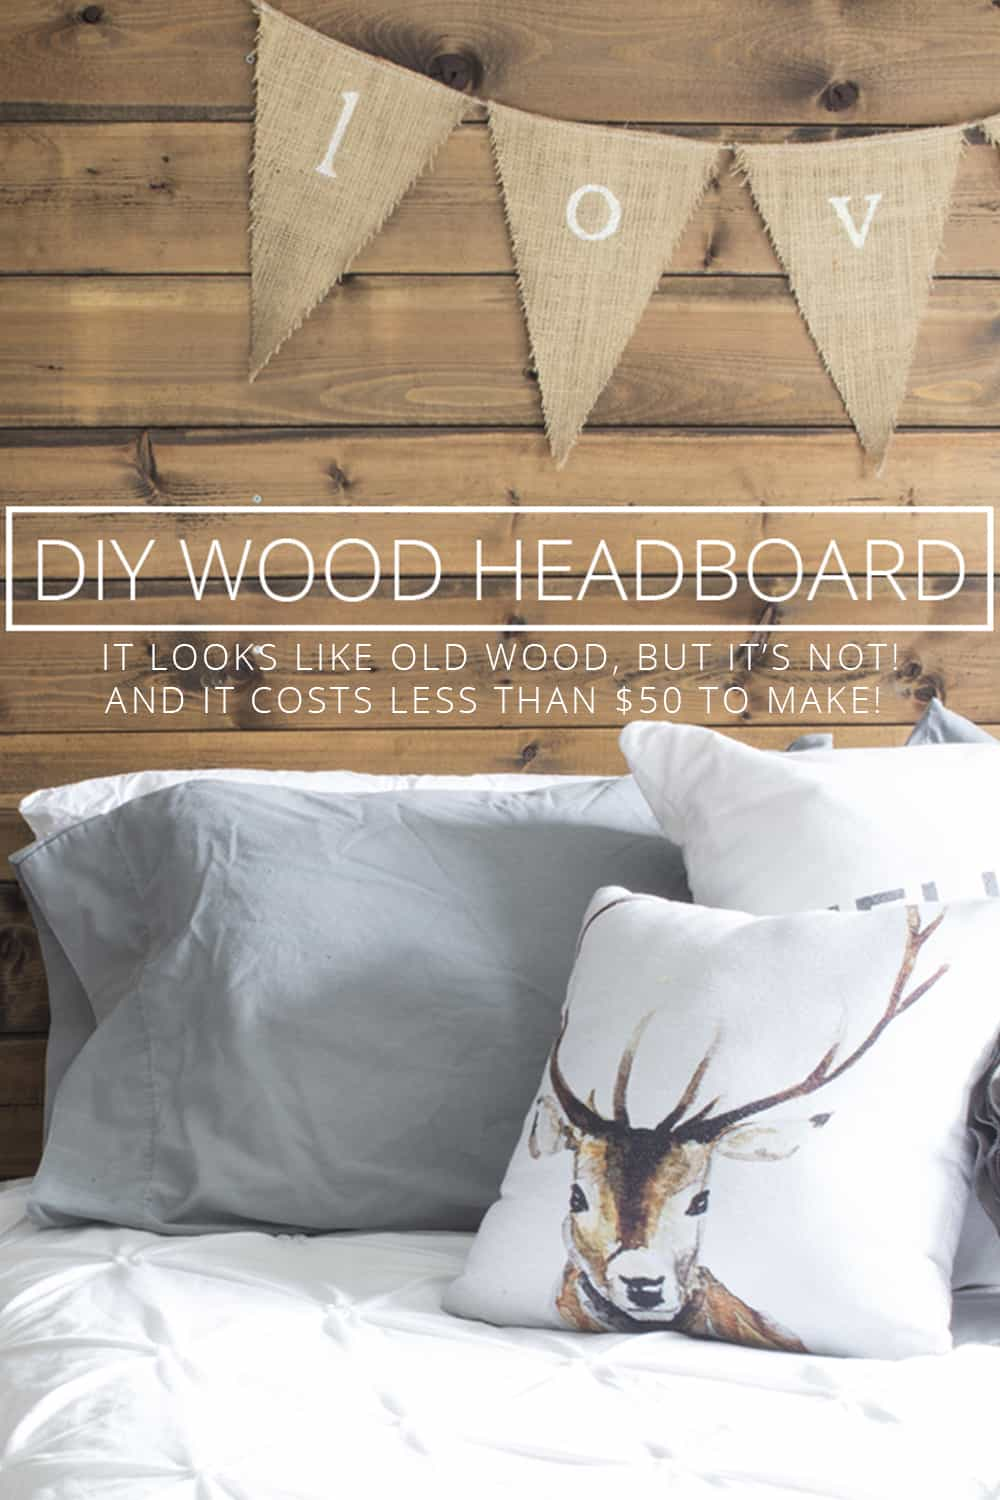 diy wood headboard with new wood for less than